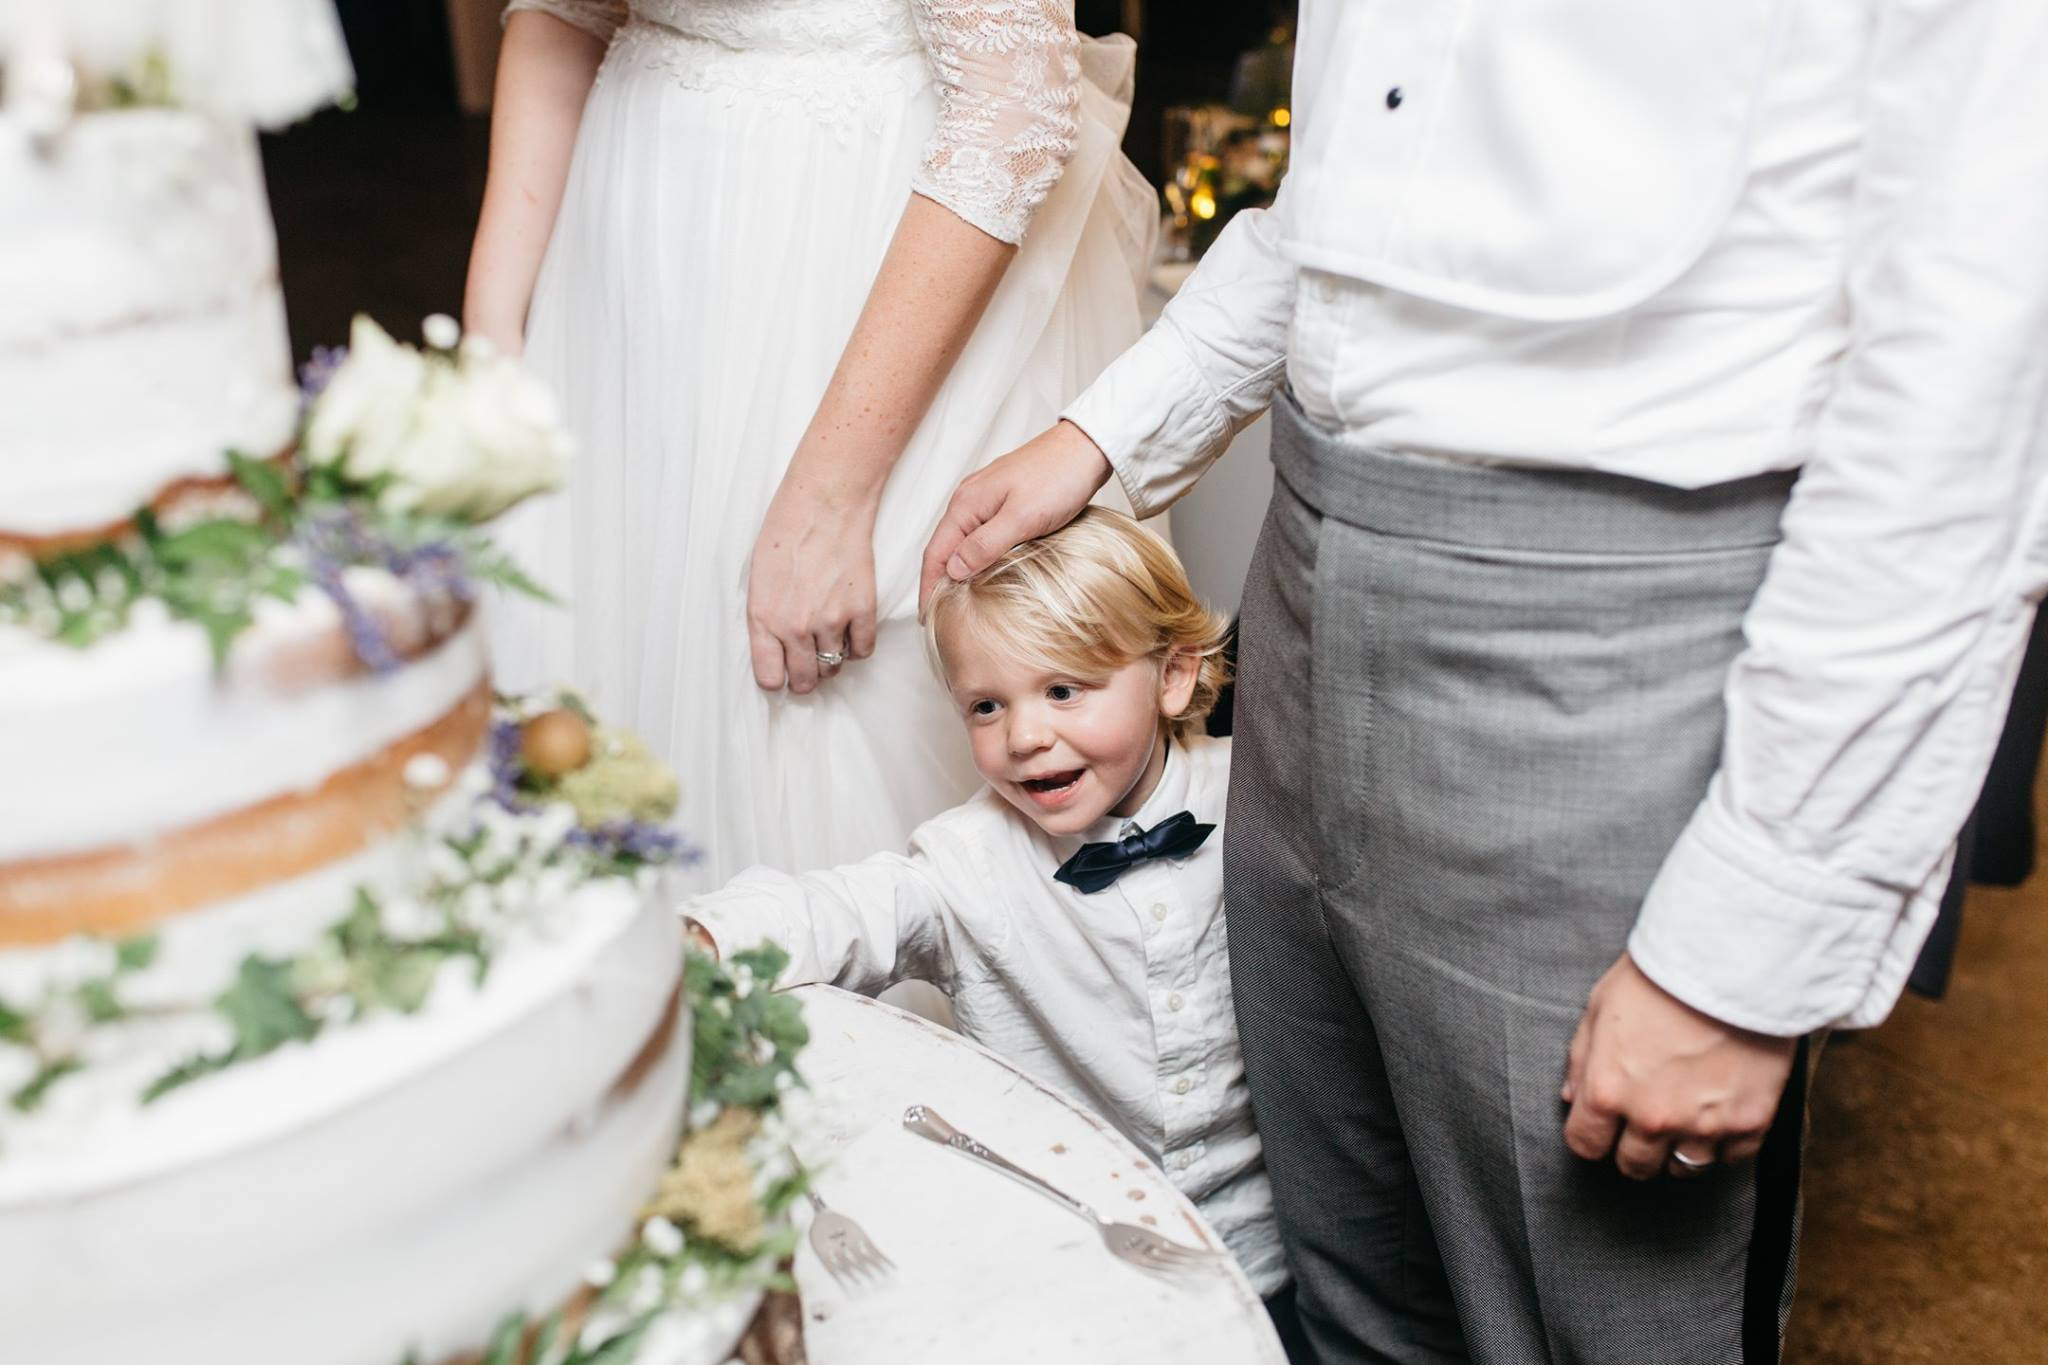 ring bearer reaching for the wedding cake